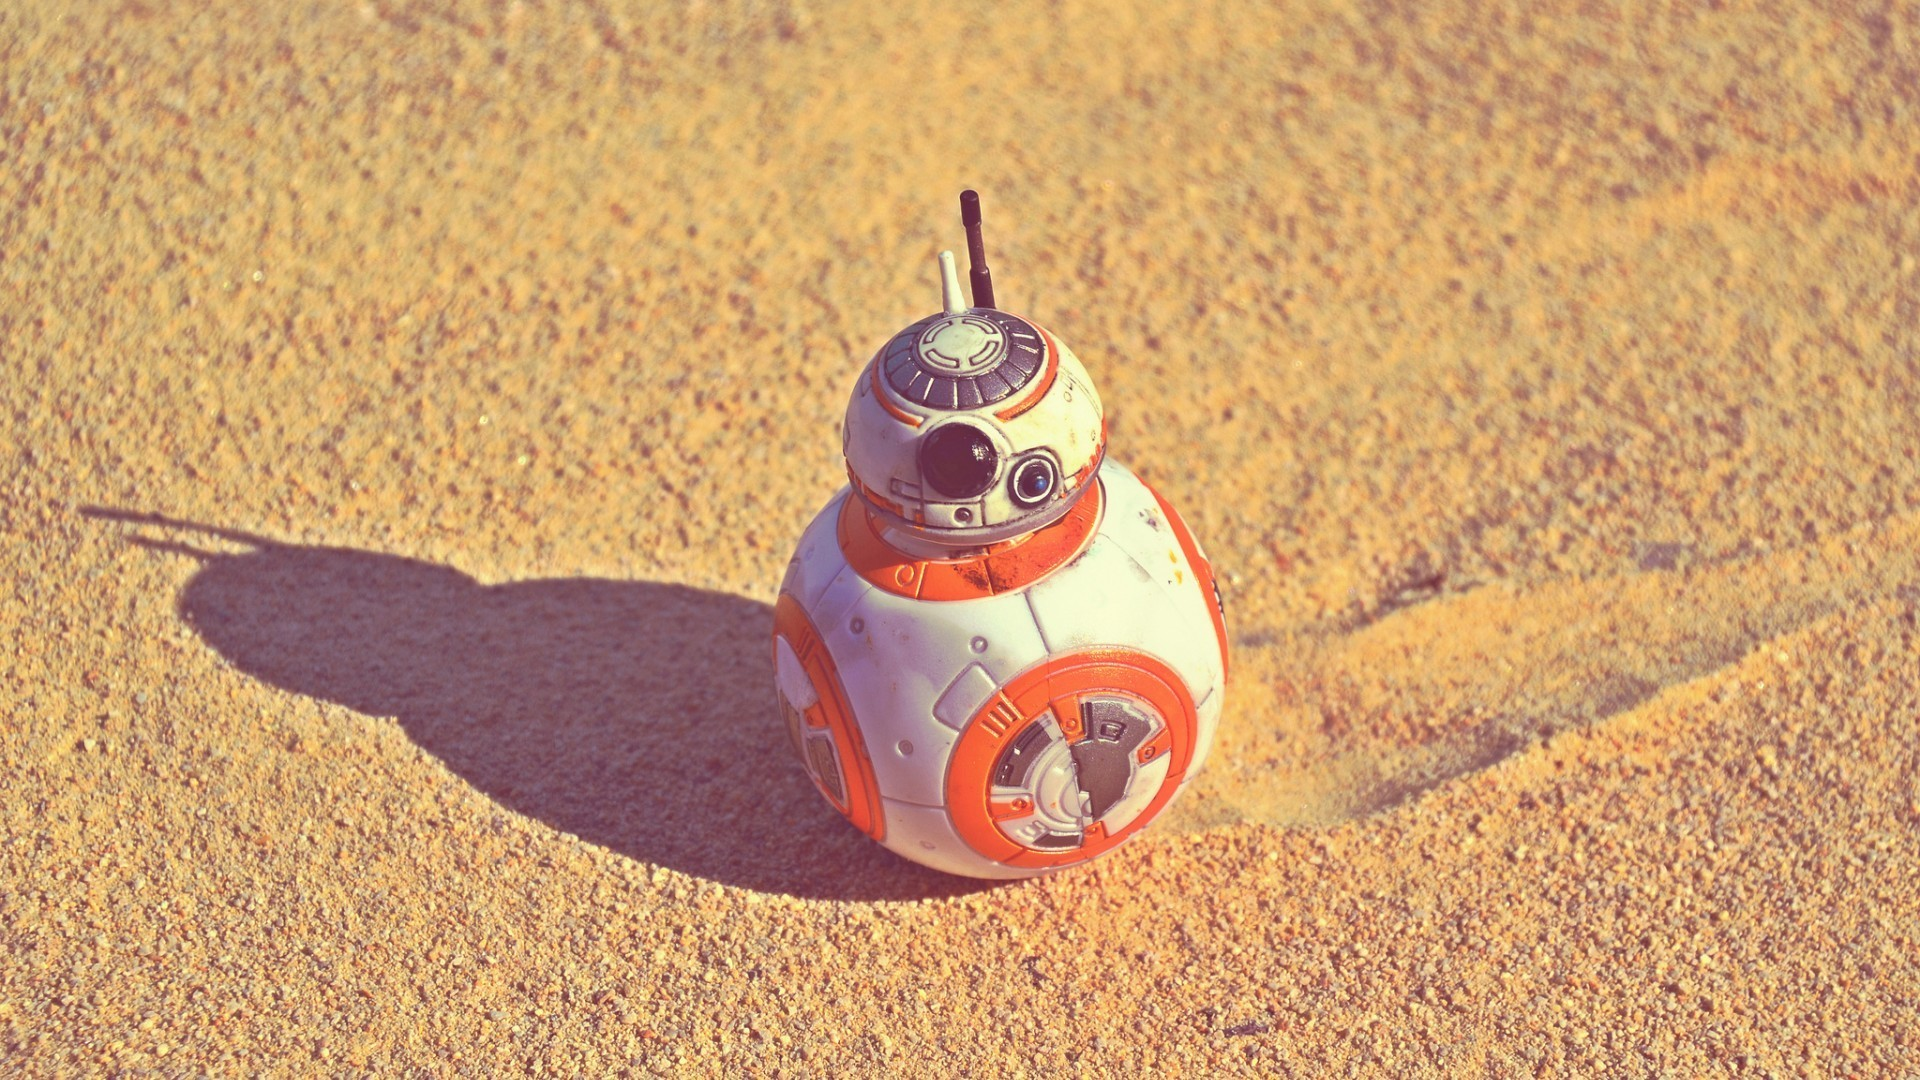 Bb8 Wallpaper 183 ① Download Free Cool Backgrounds For